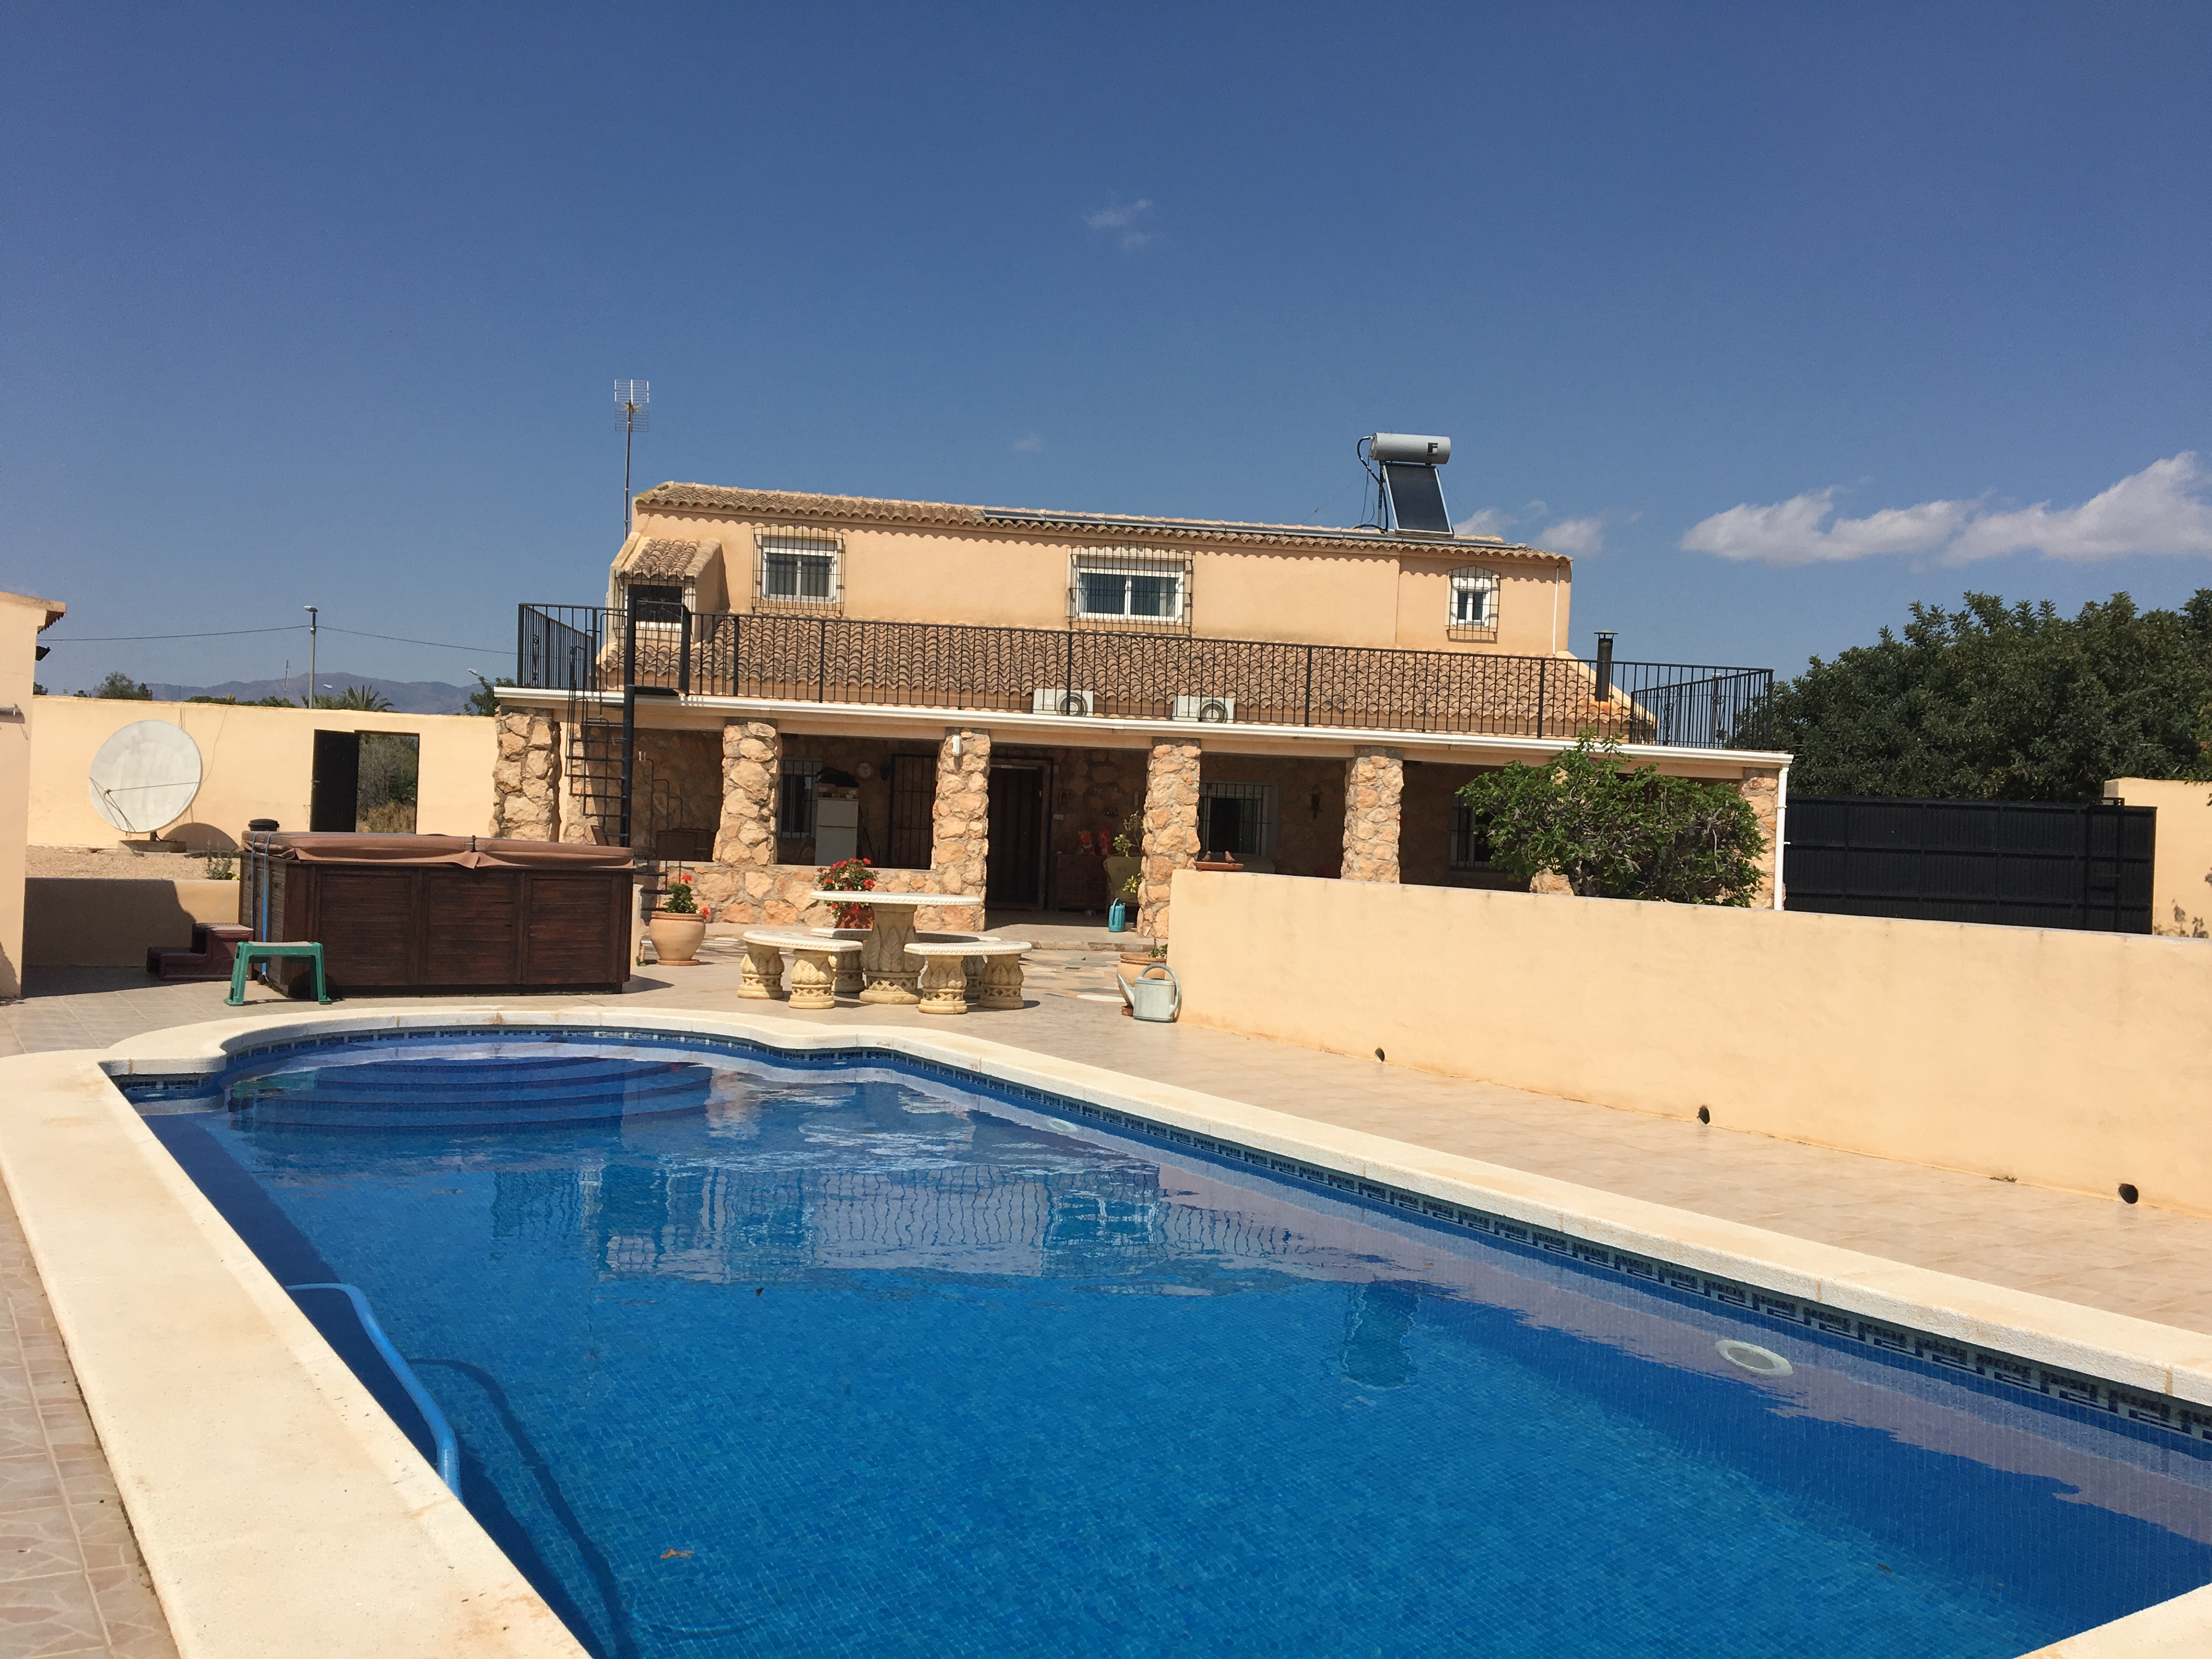 Ref:VALLA 01 country house For Sale in Valladolises